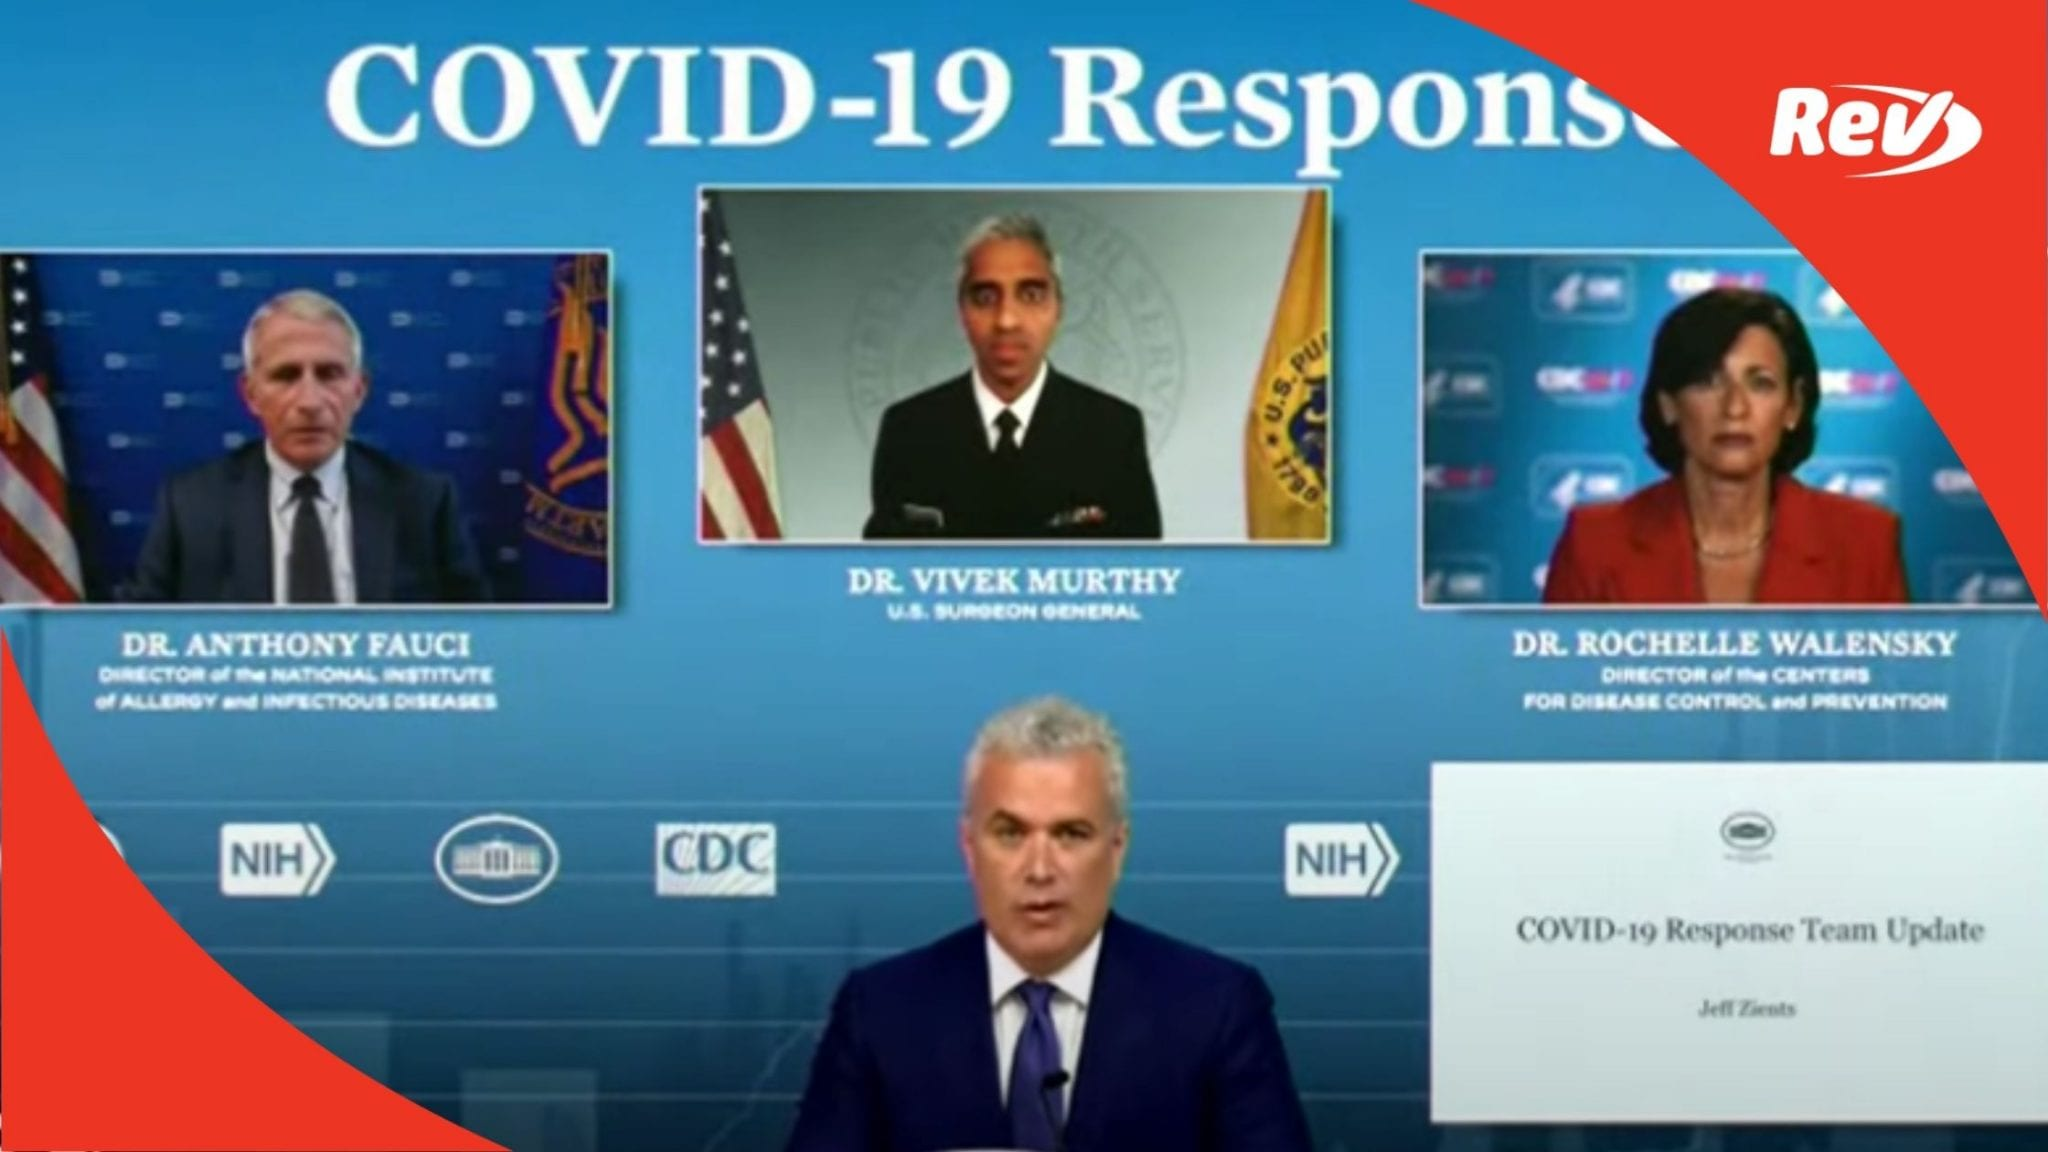 White House COVID-19 Task Force, Dr. Fauci Press Conference Transcript July 16